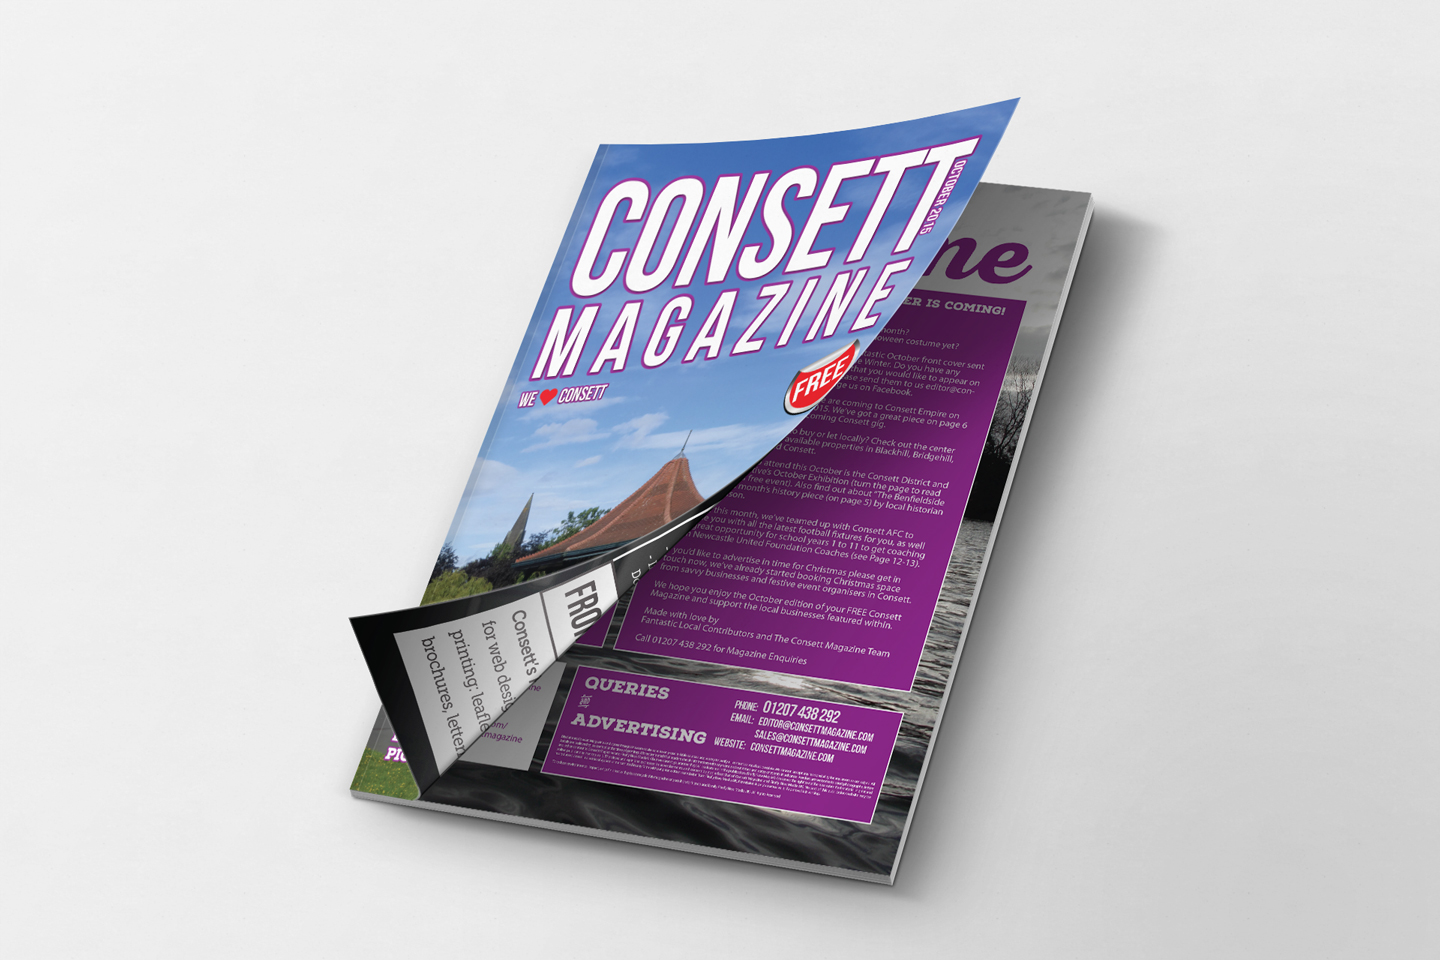 Consett Magazine - Editorial October 2015